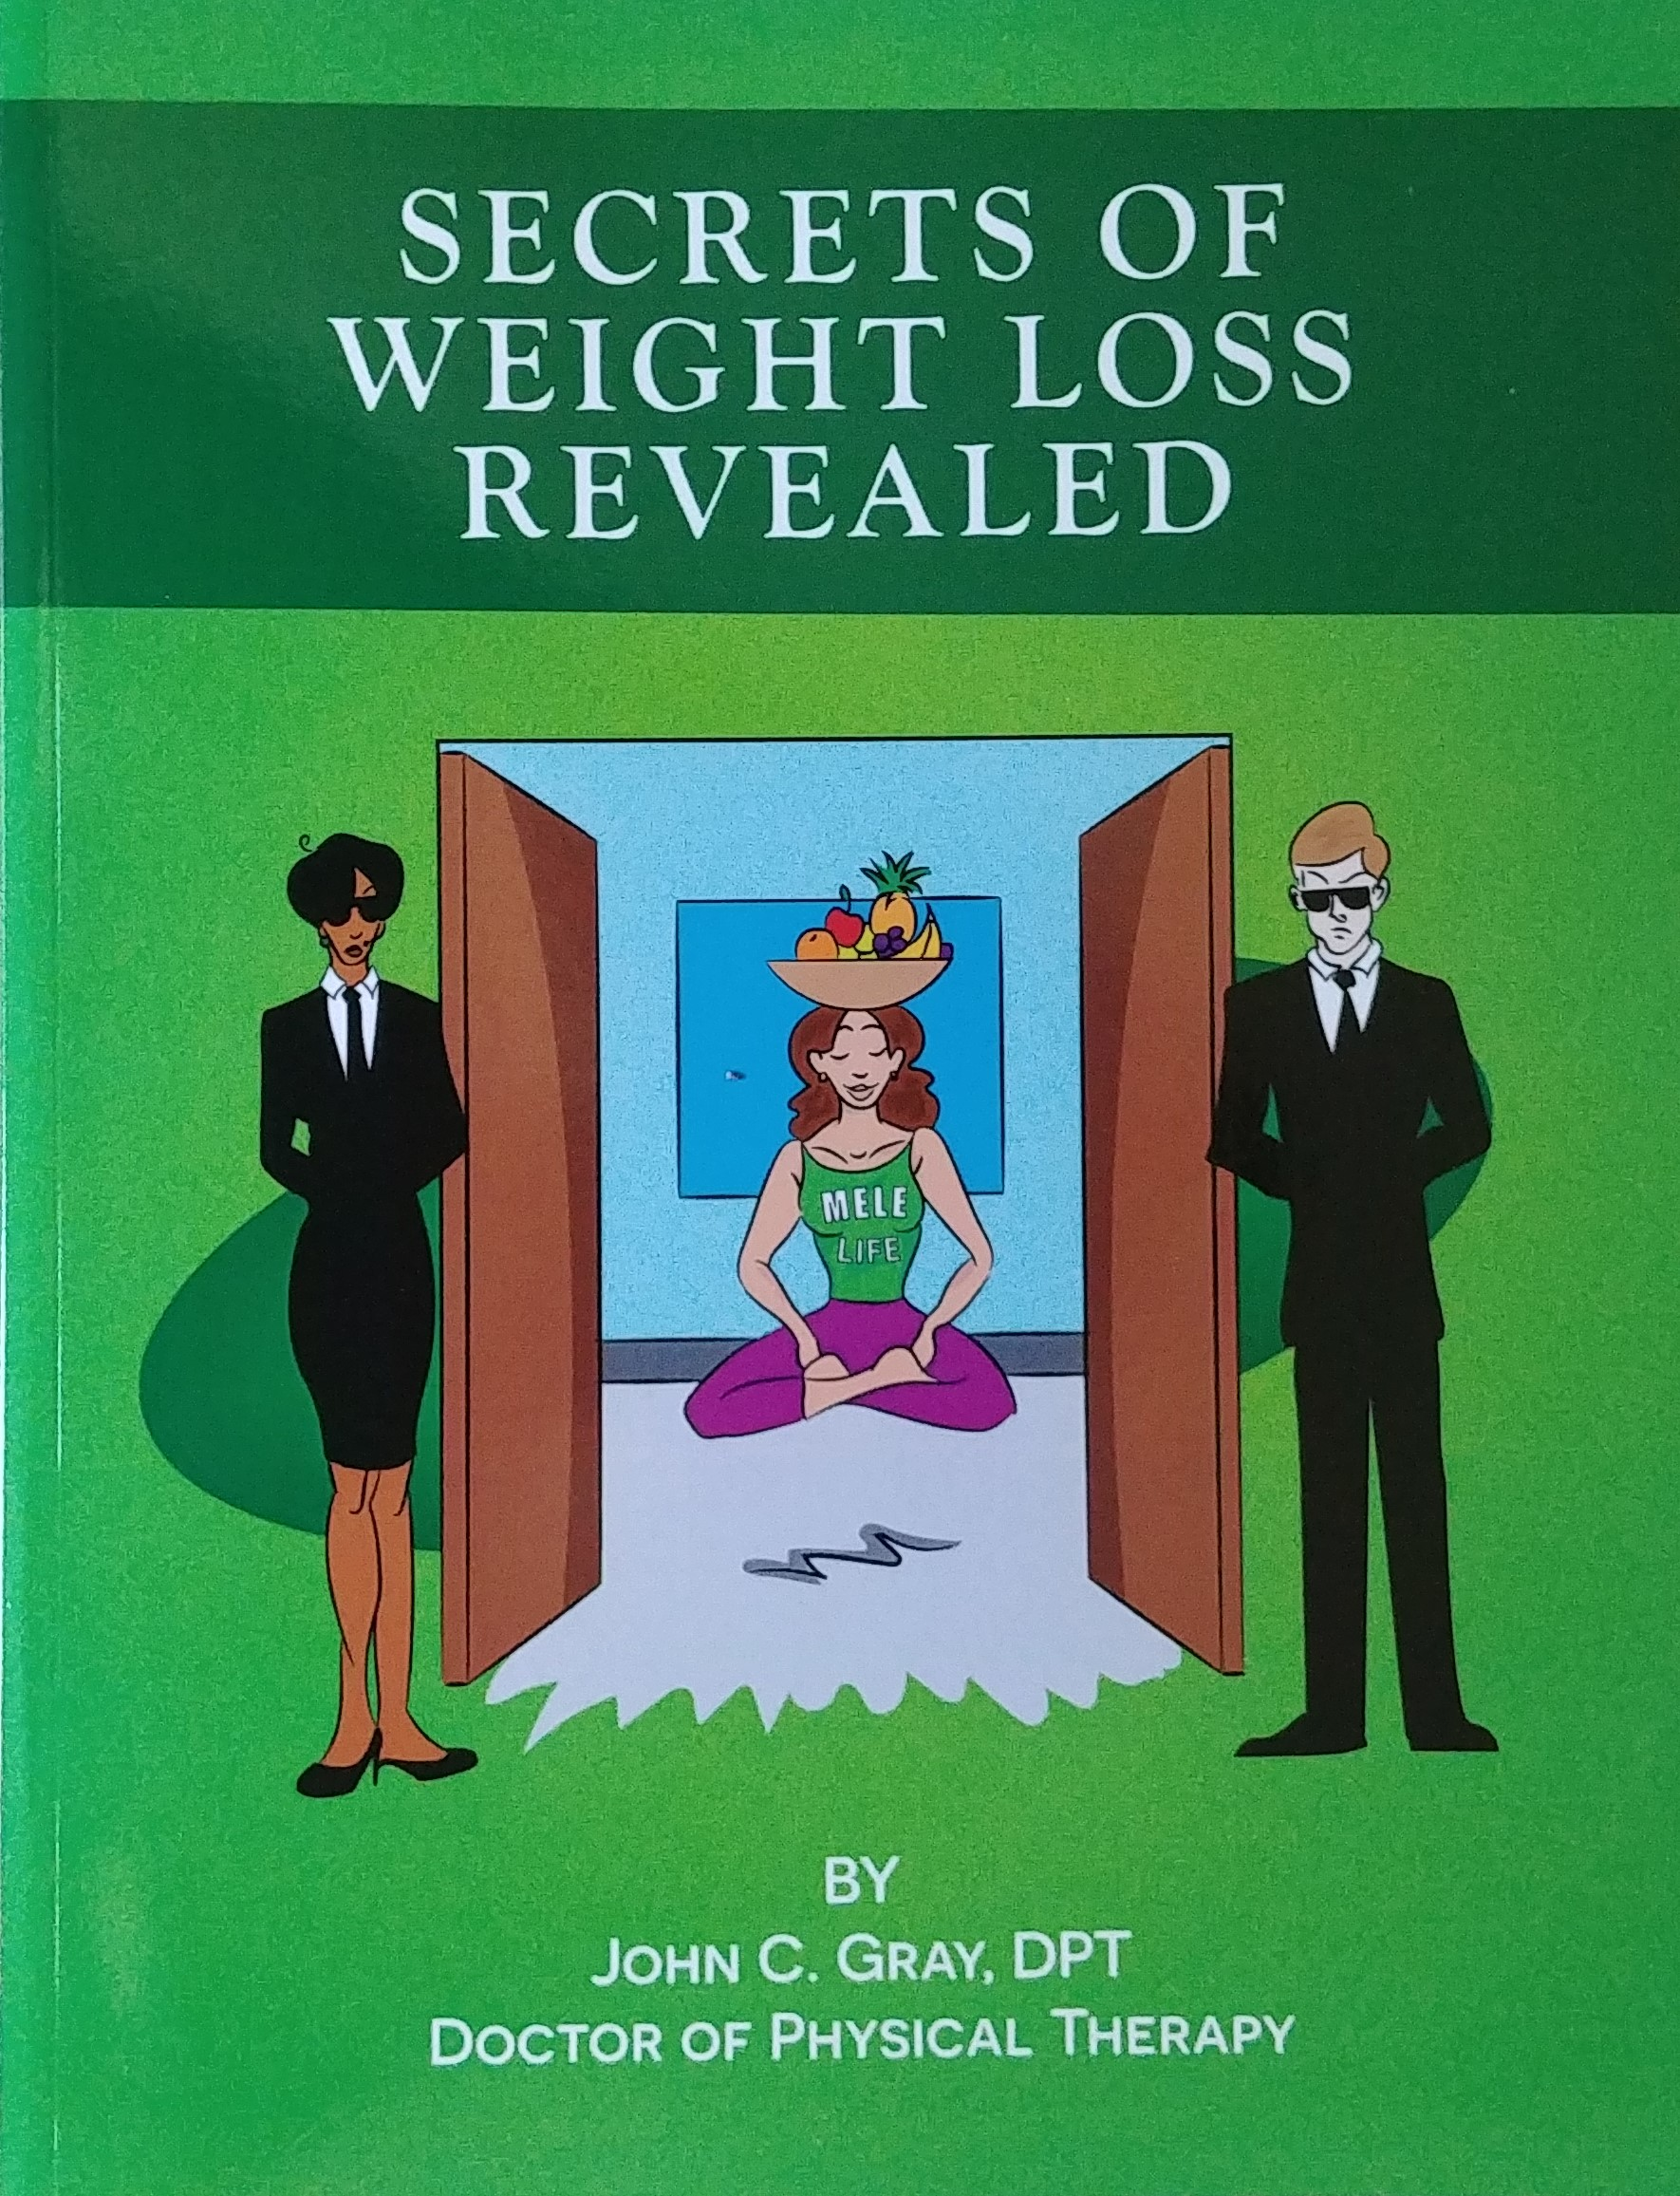 MELE Life book cover Wt Loss